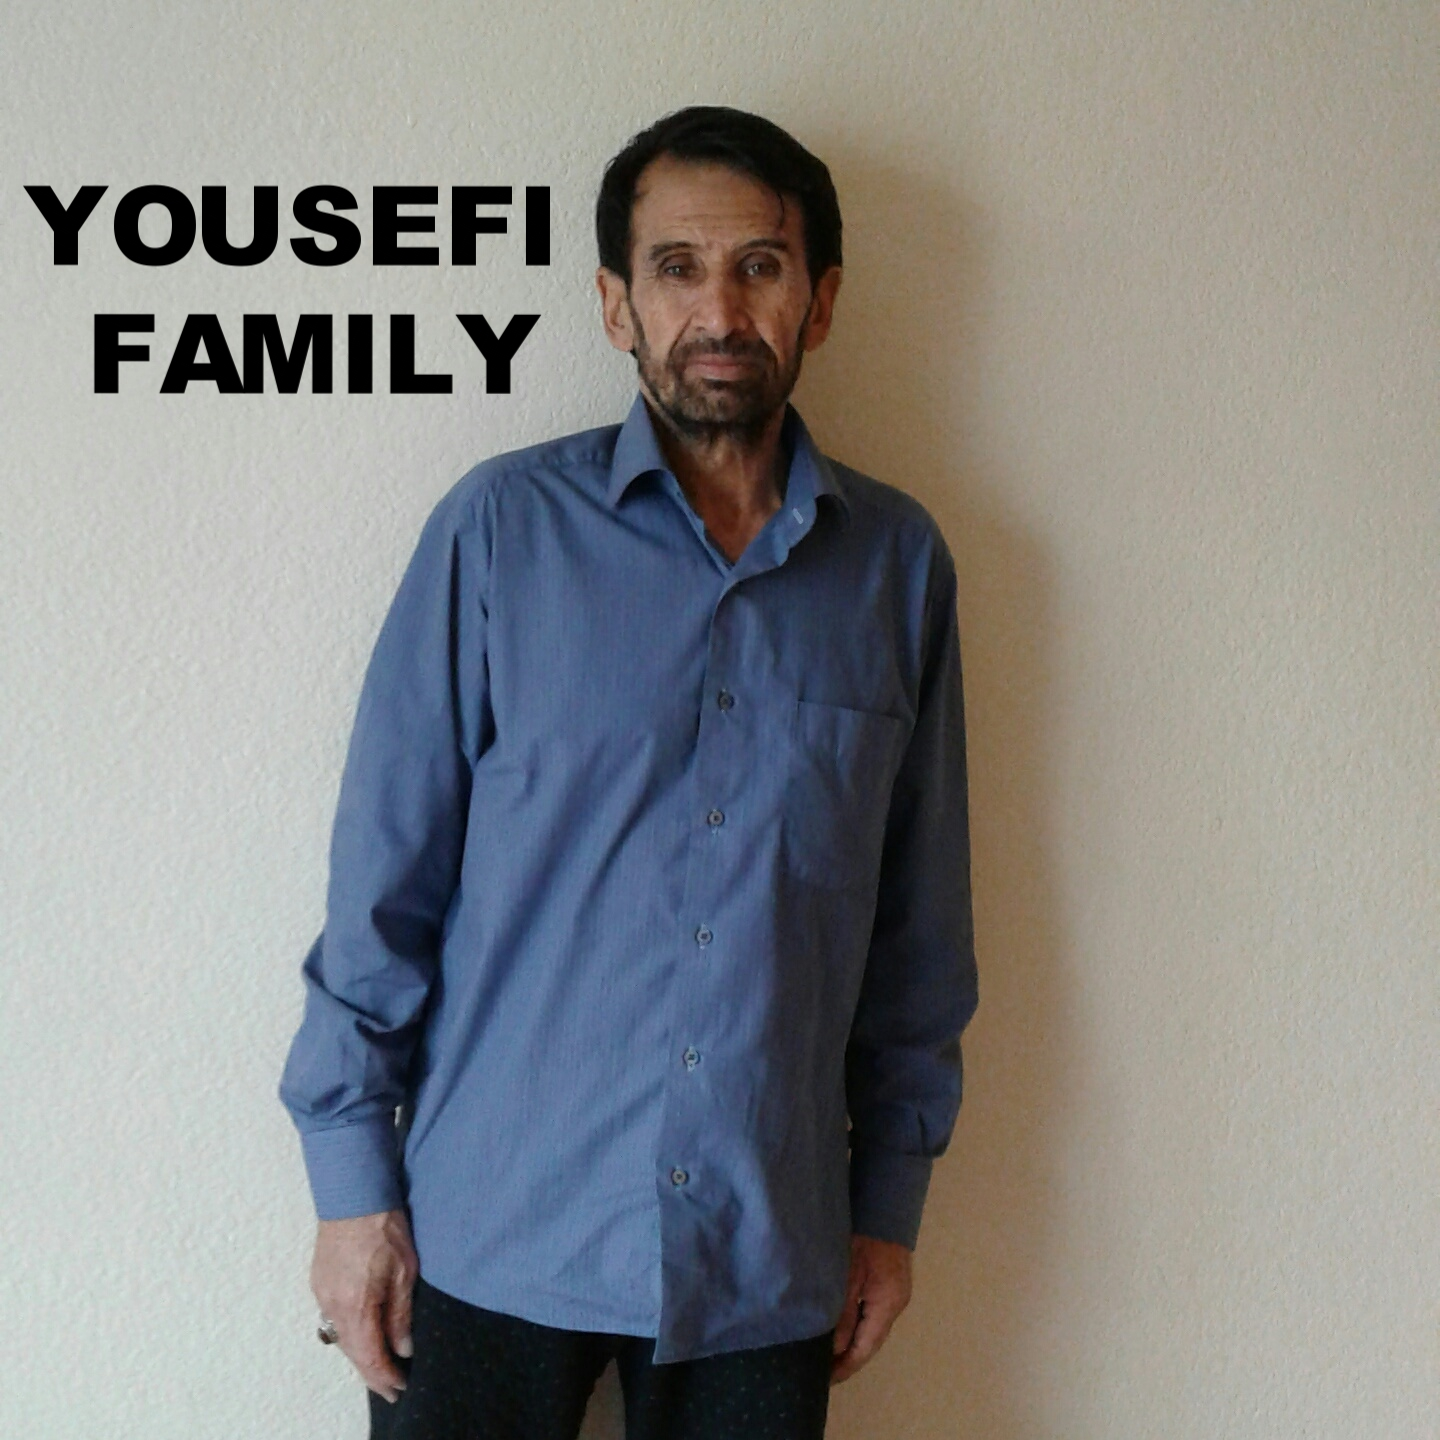 A family of four: Mom and Dad with 14 and 22 years old girls from Iran arrived on January 24th. Dad is seeking for a job and 14 yr old girl is enrolled in school. Their home needs to be furnished and they are currently living in a completely empty apartment.